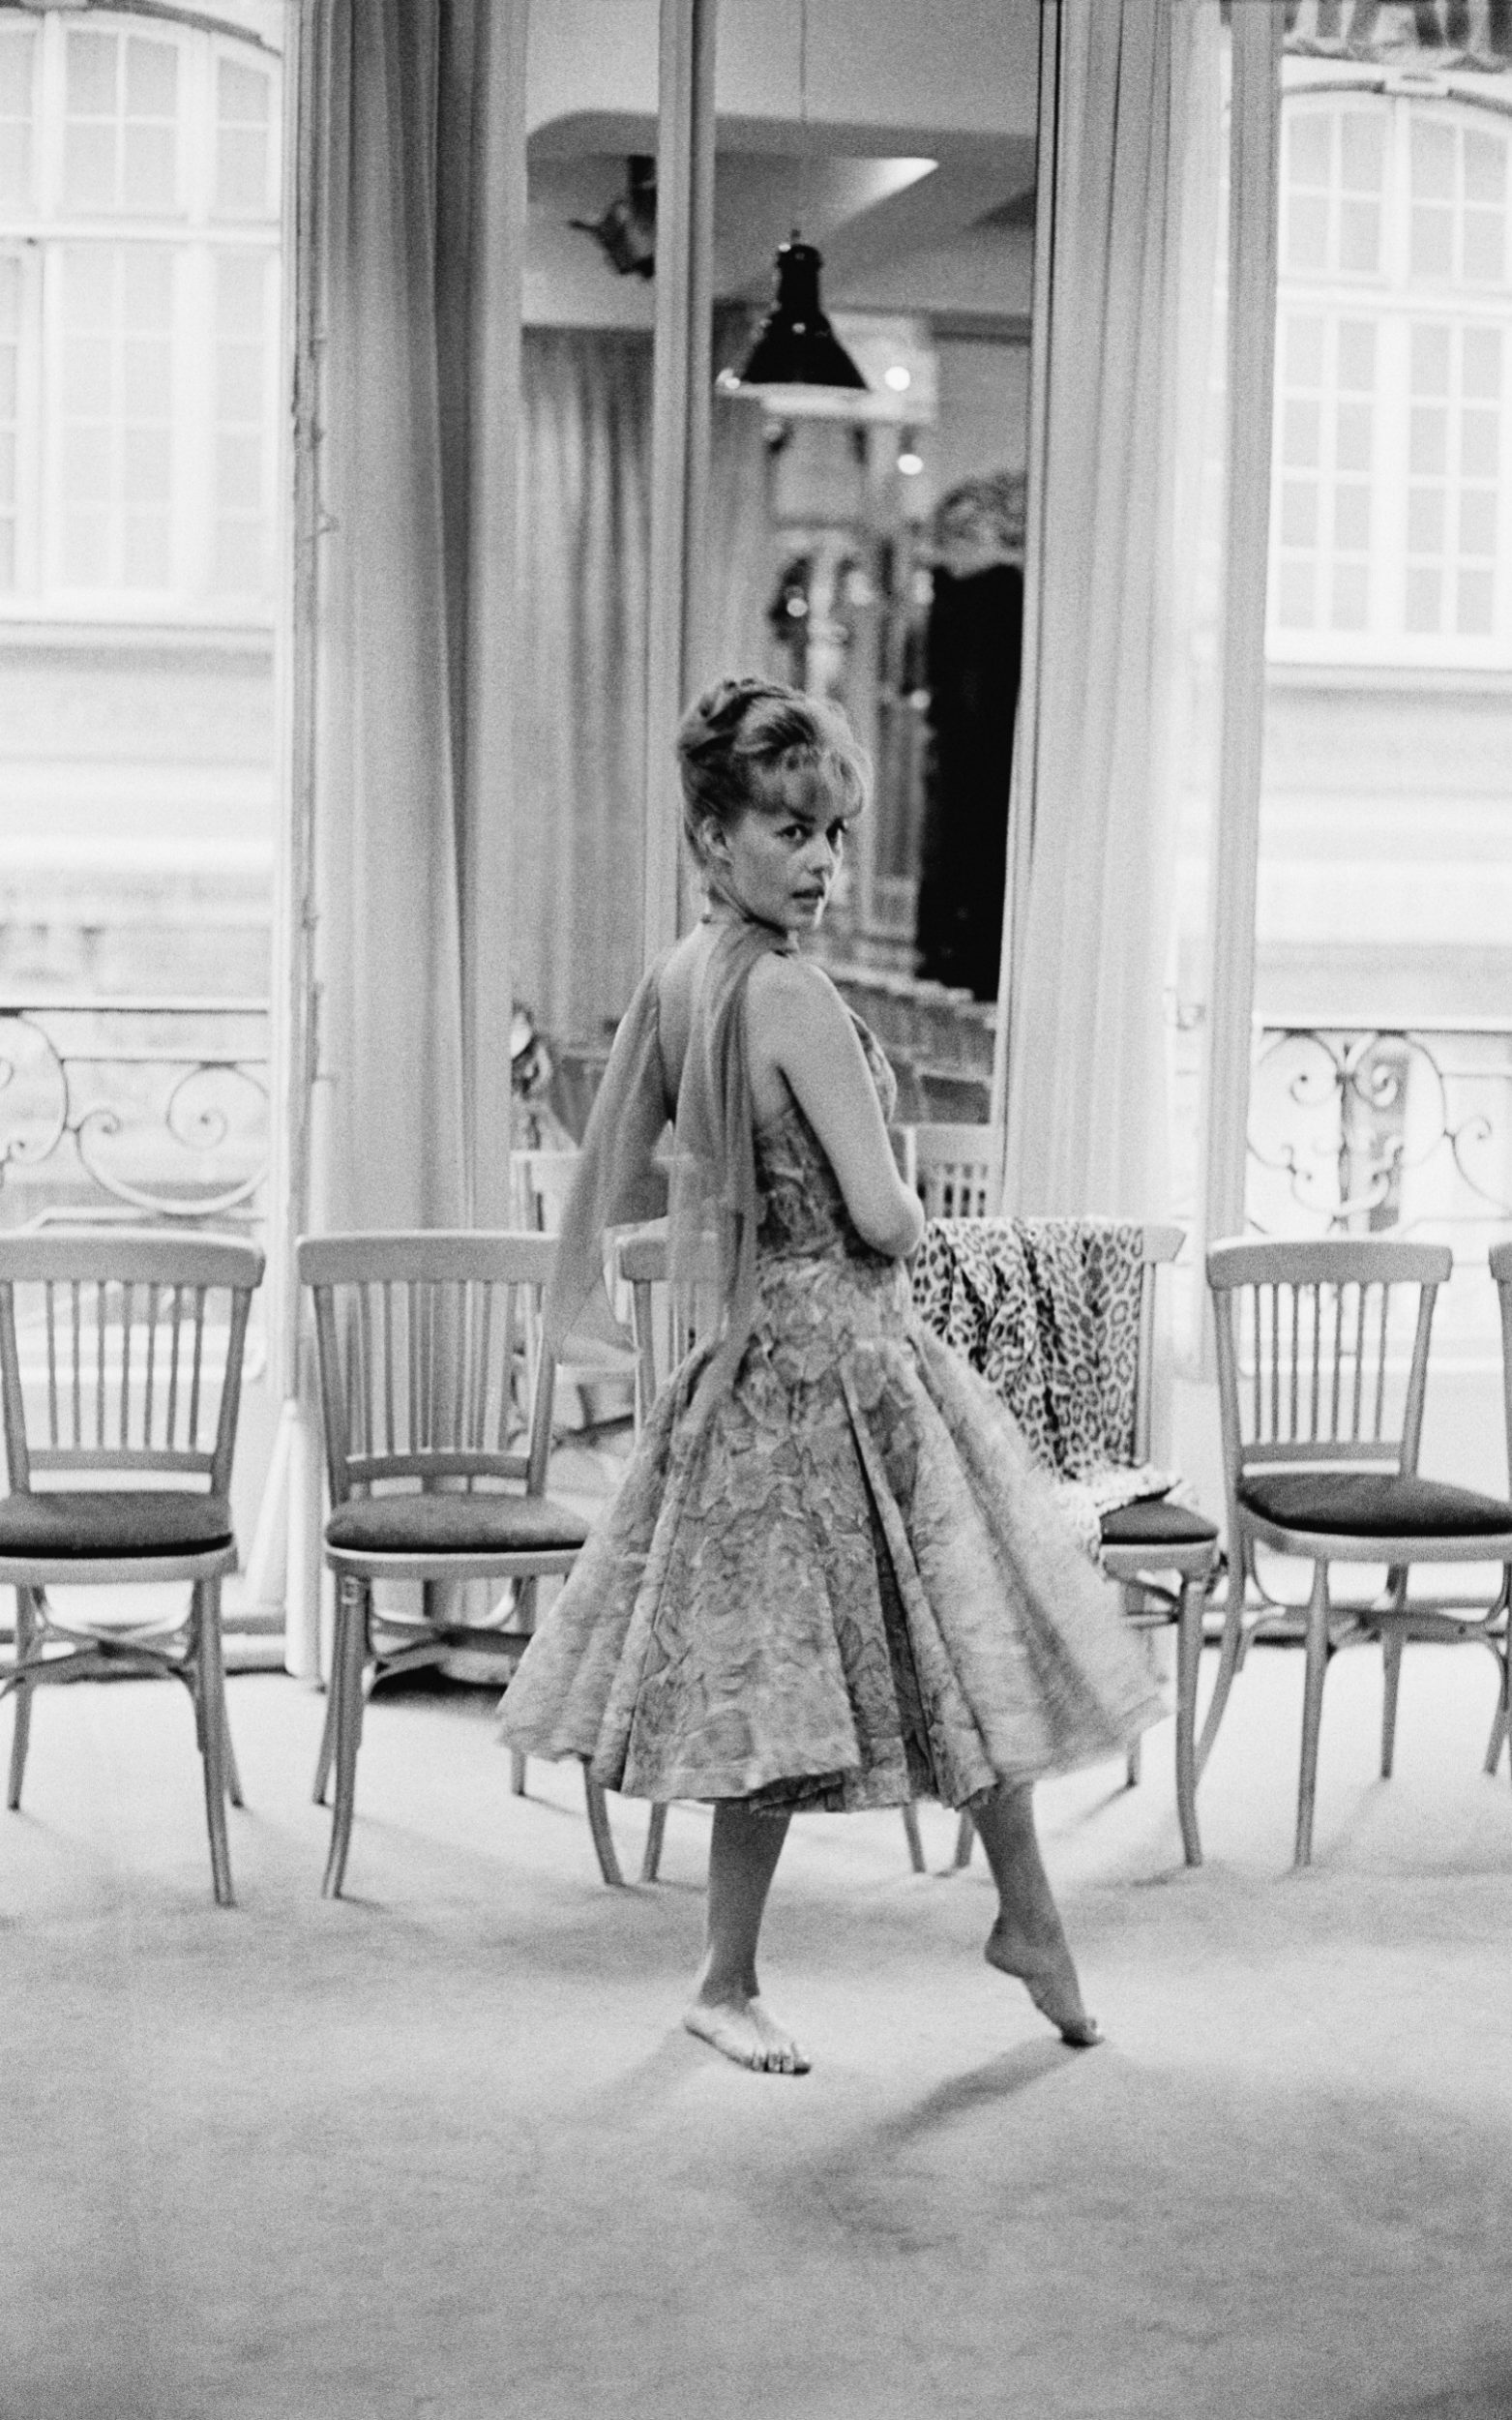 Five ways that Jeanne Moreau mastered her own take on French chic